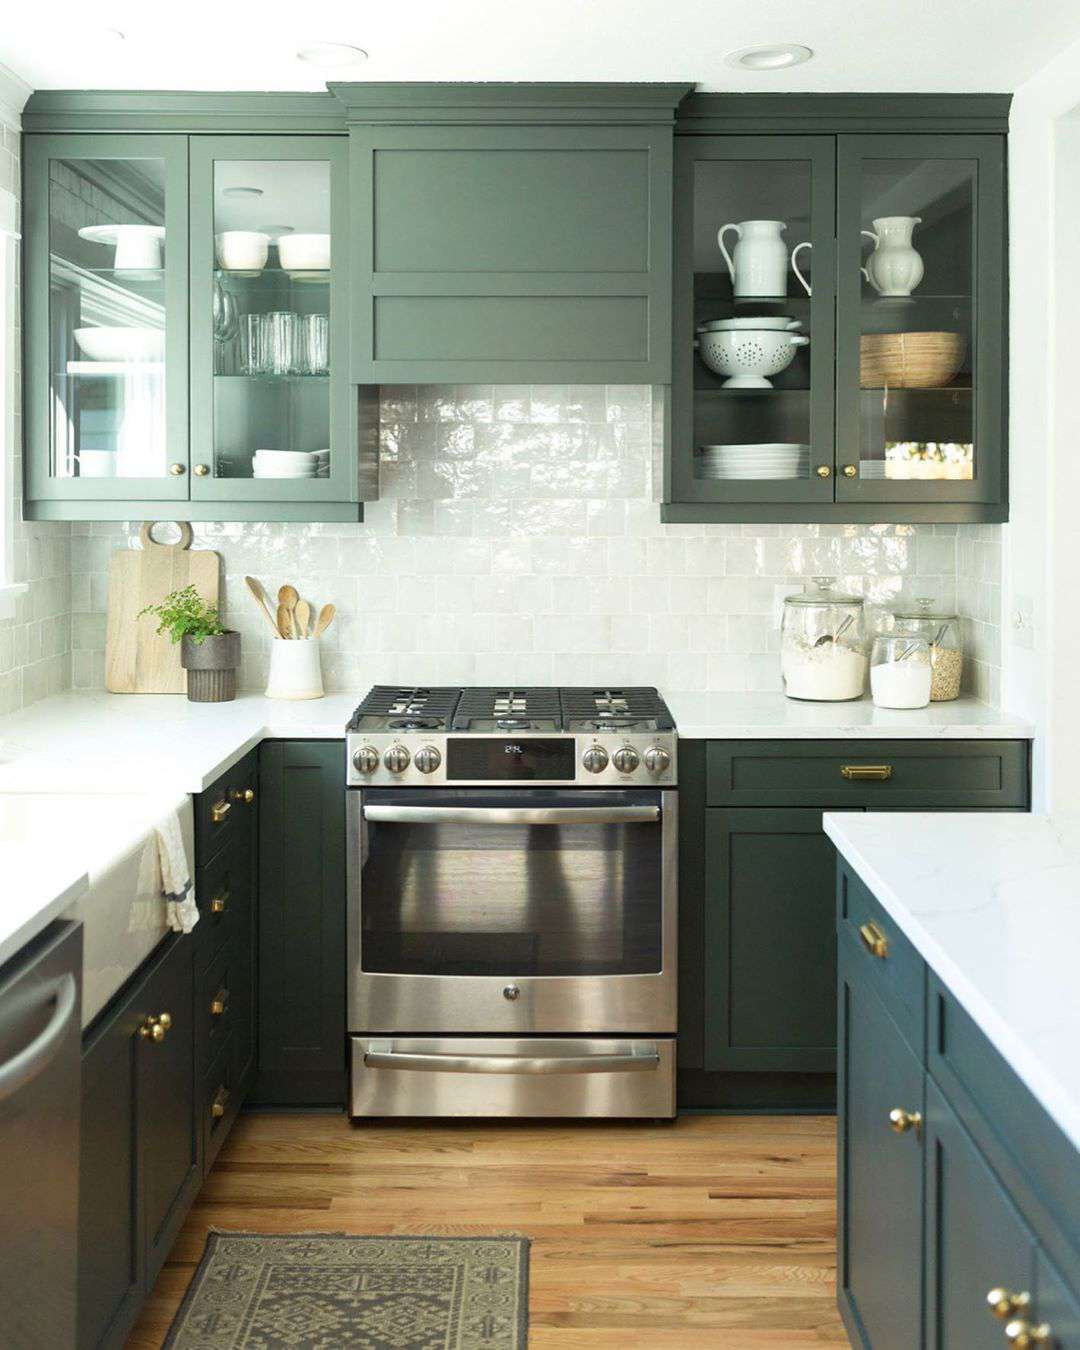 Green kitchen with clear glass cabinets